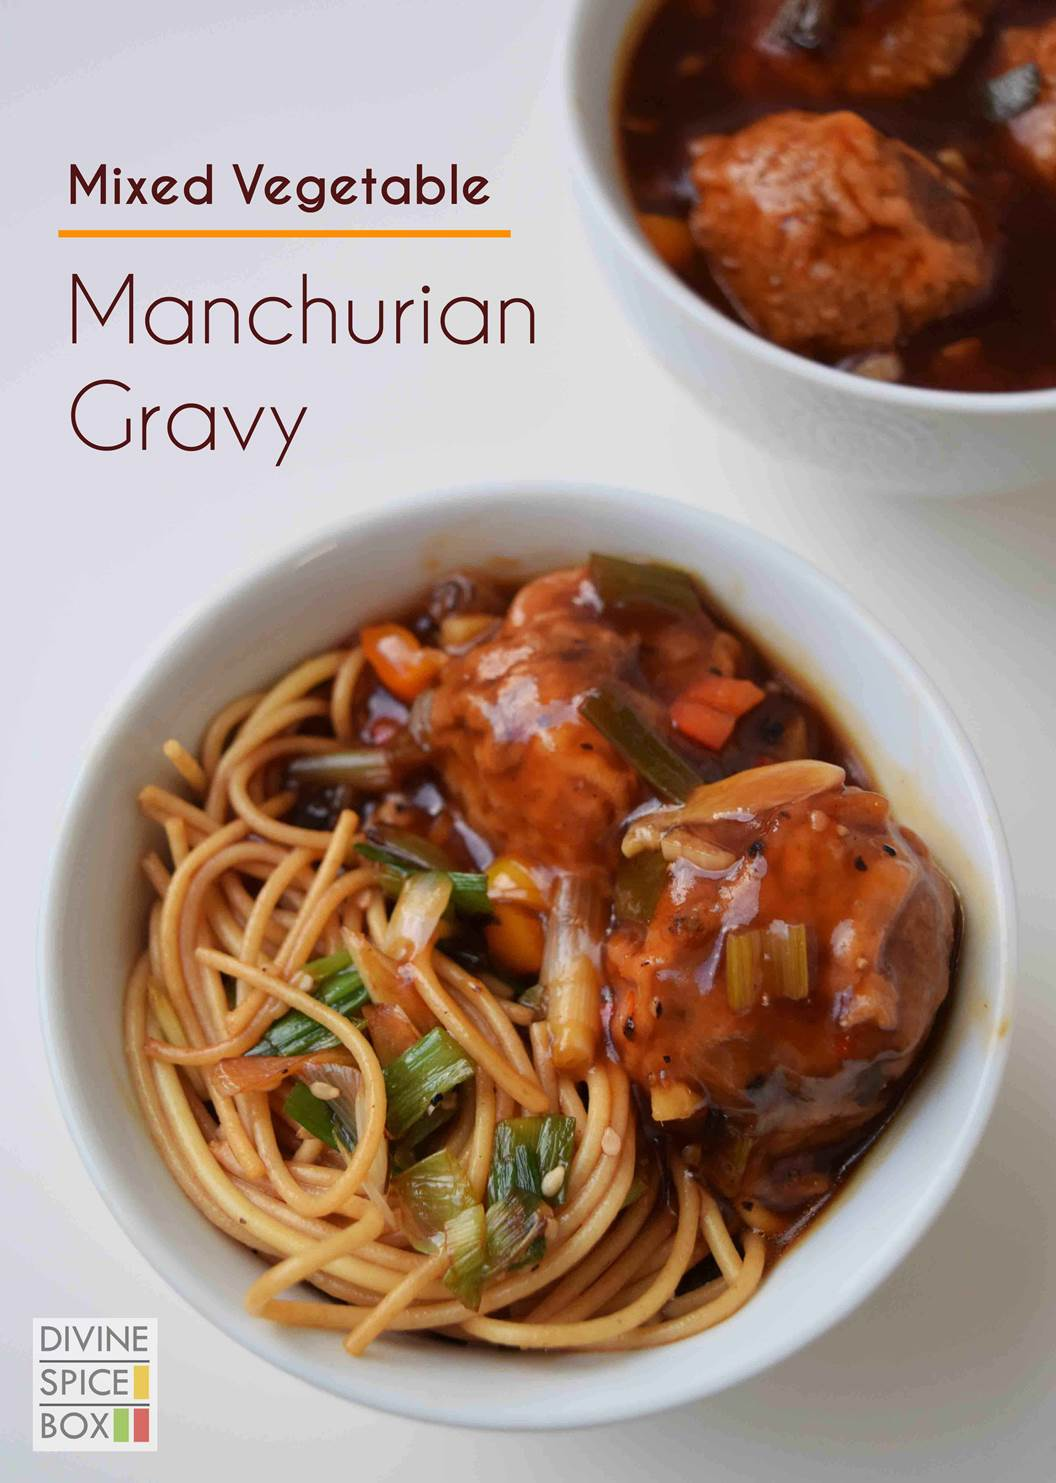 Mixed Vegetable Manchurian Gravy